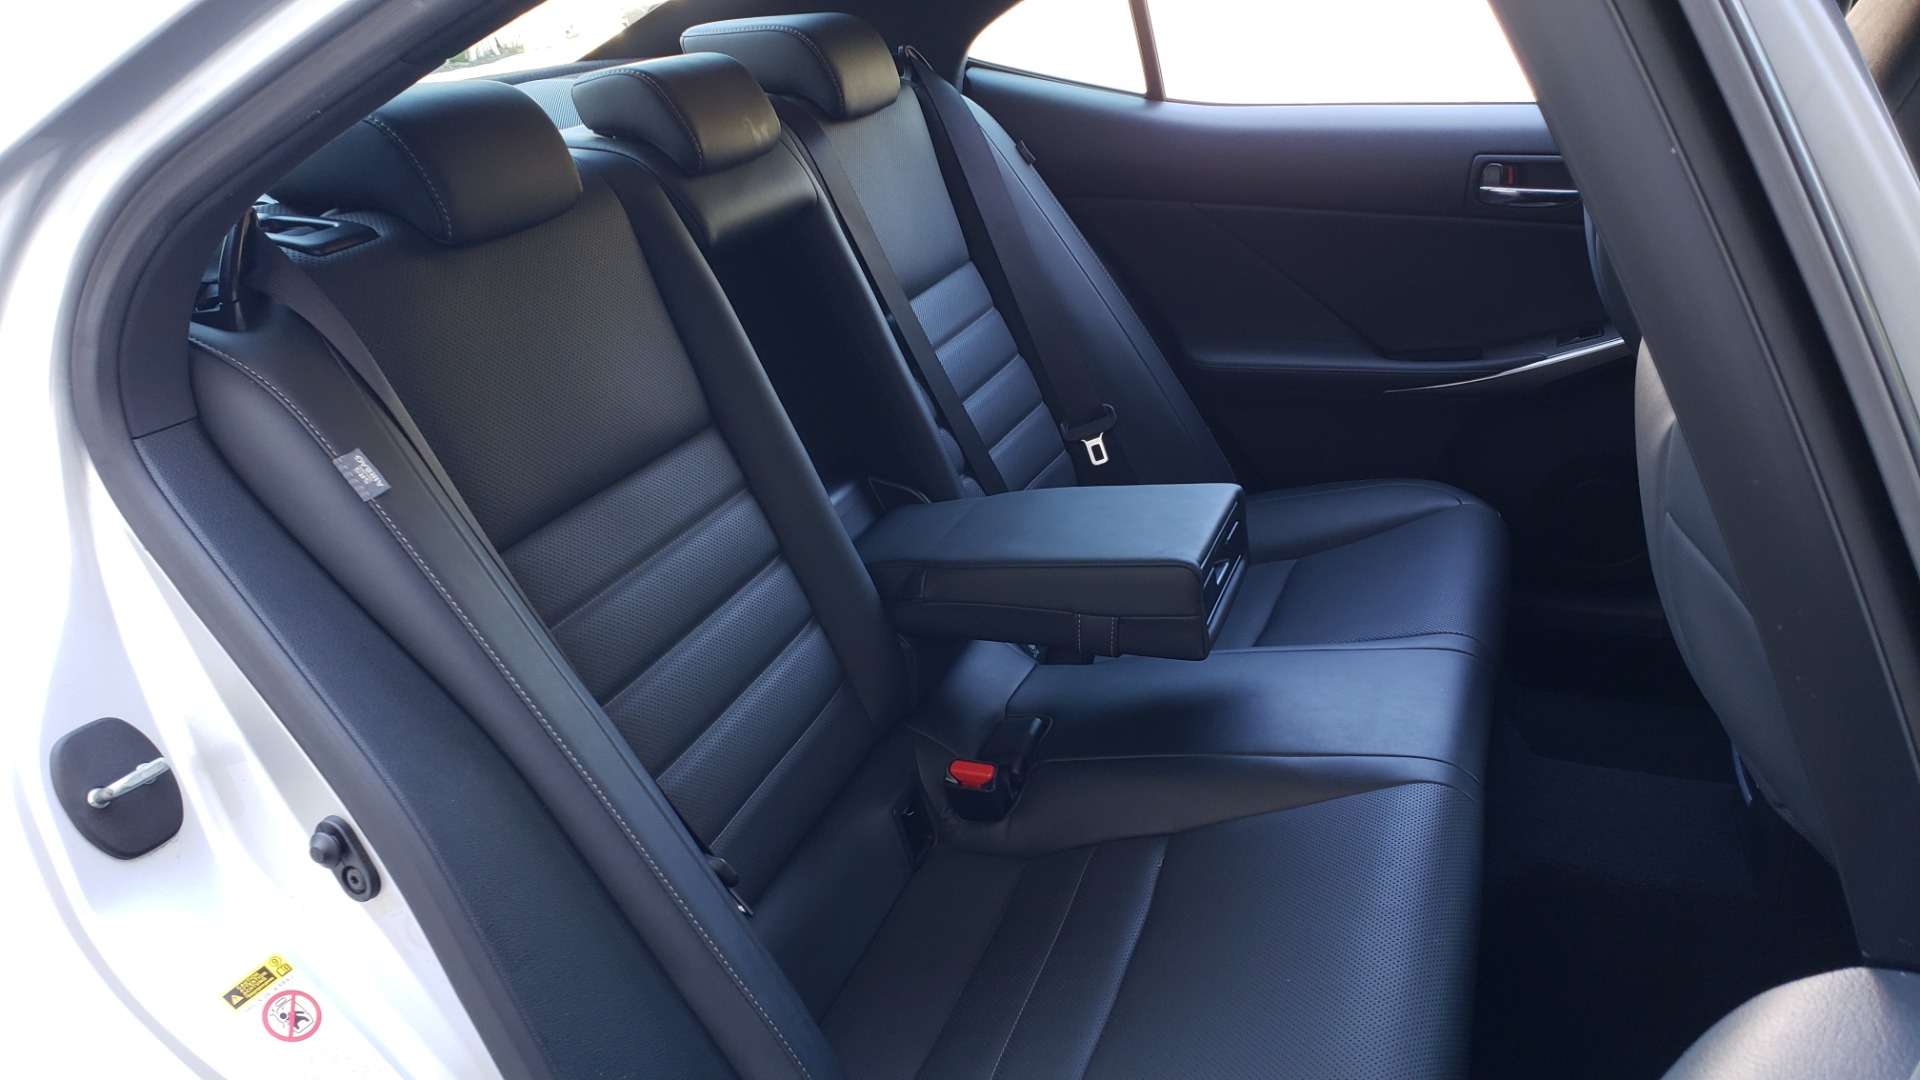 Used 2015 Lexus IS 250 F-SPORT / BSM / SUNROOF / VENT SEATS / REARVIEW for sale Sold at Formula Imports in Charlotte NC 28227 72